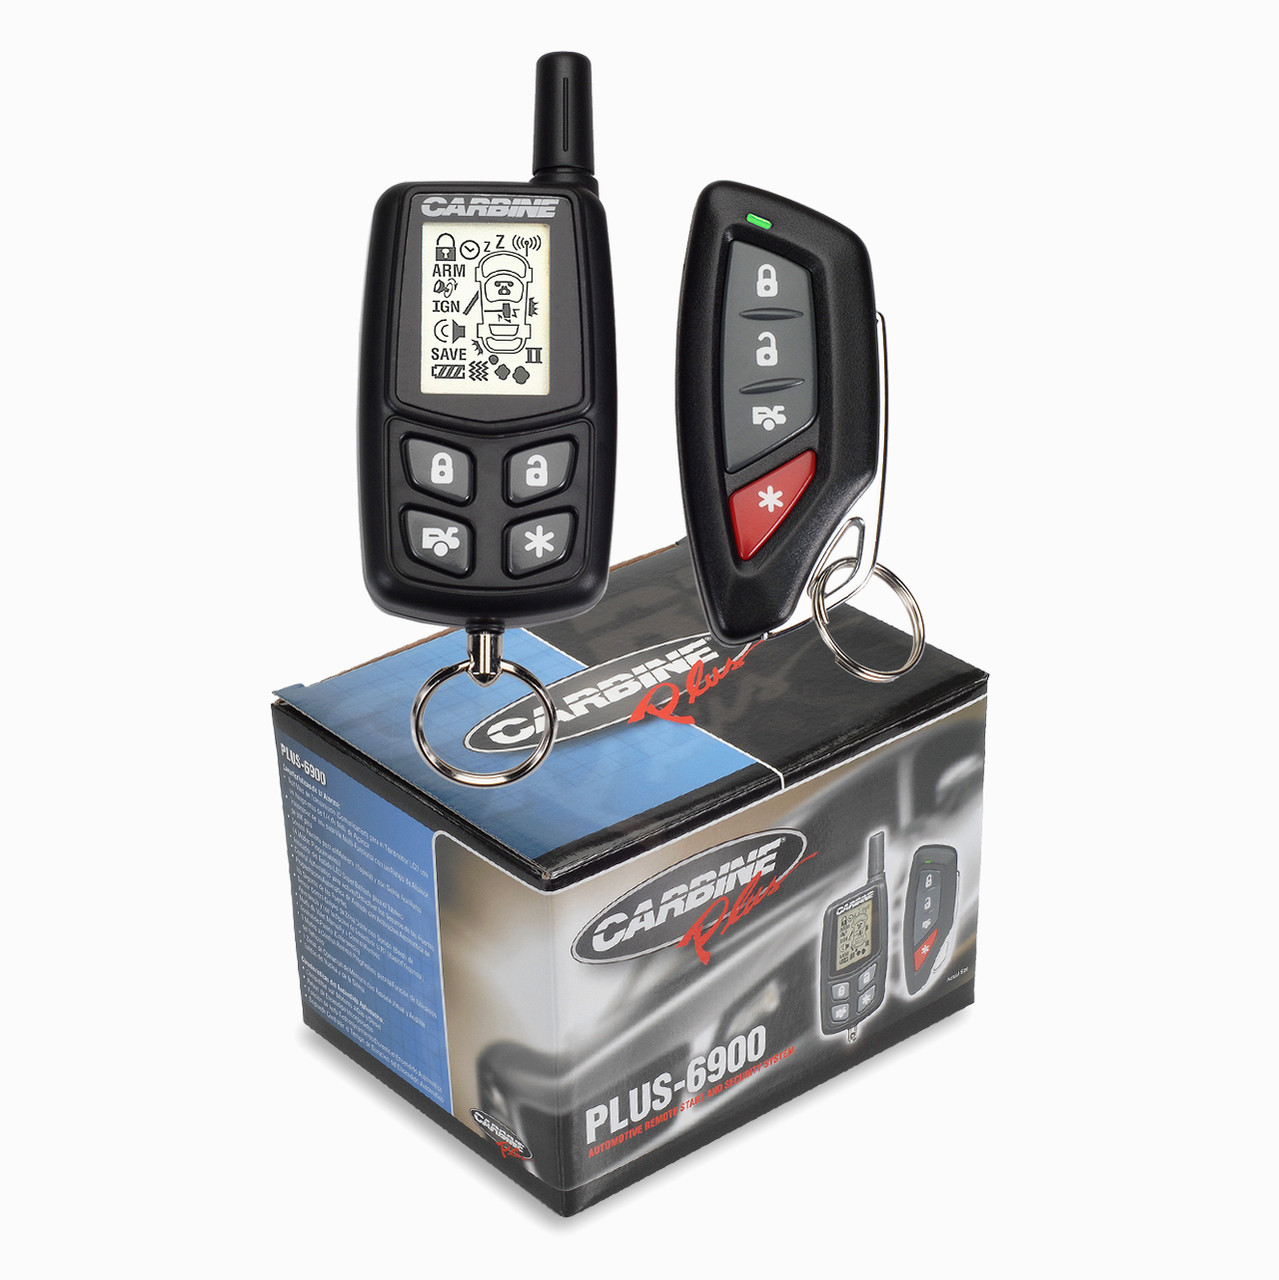 hight resolution of carbine plus 6900 4 channel two way remote start security system viper car alarm wiring diagram carbine car alarm wiring diagram